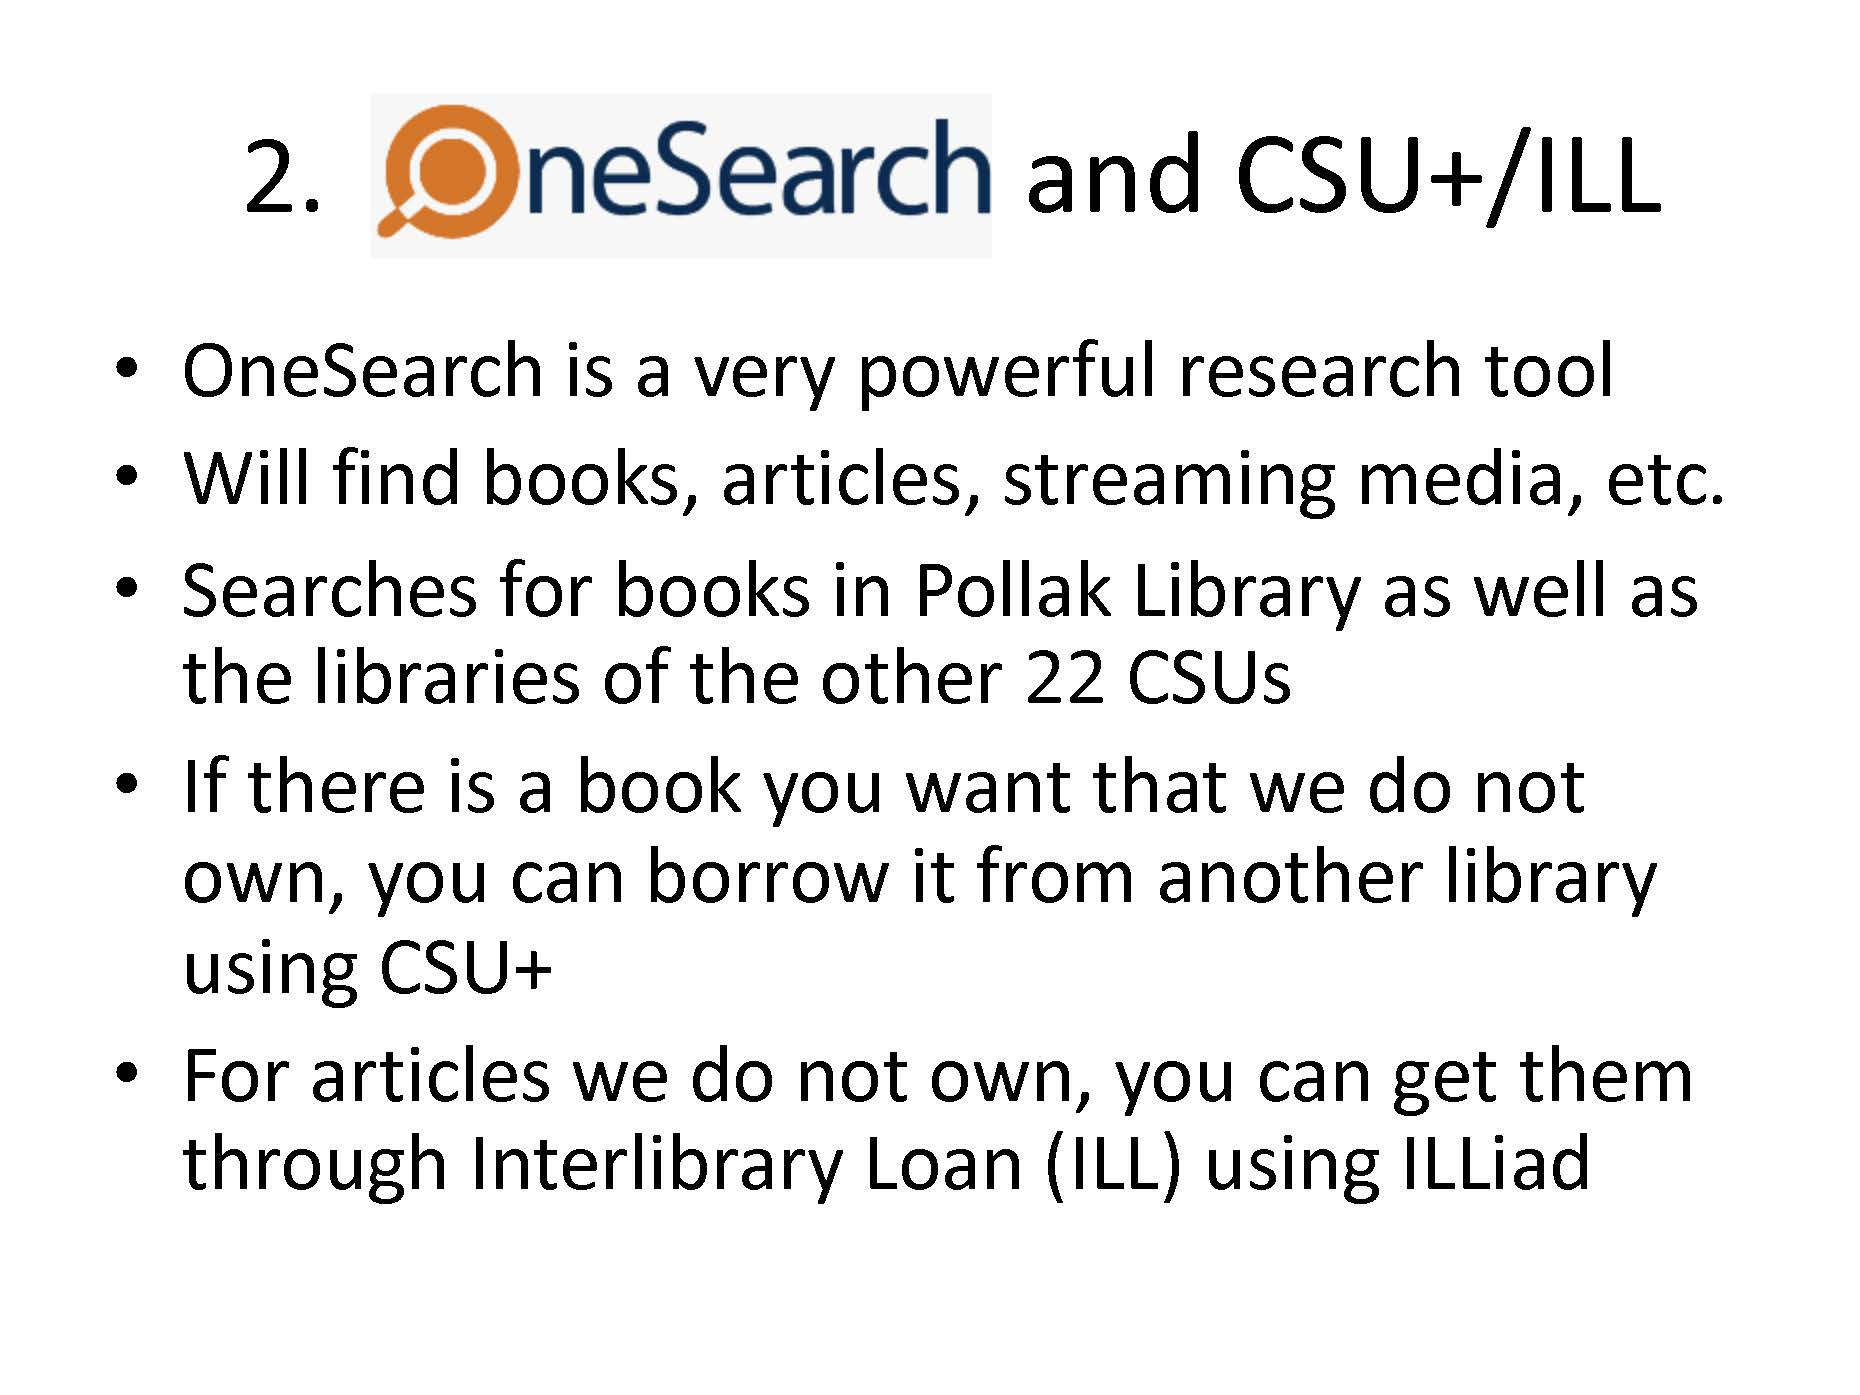 onesearch and csu plus interlibrary loan